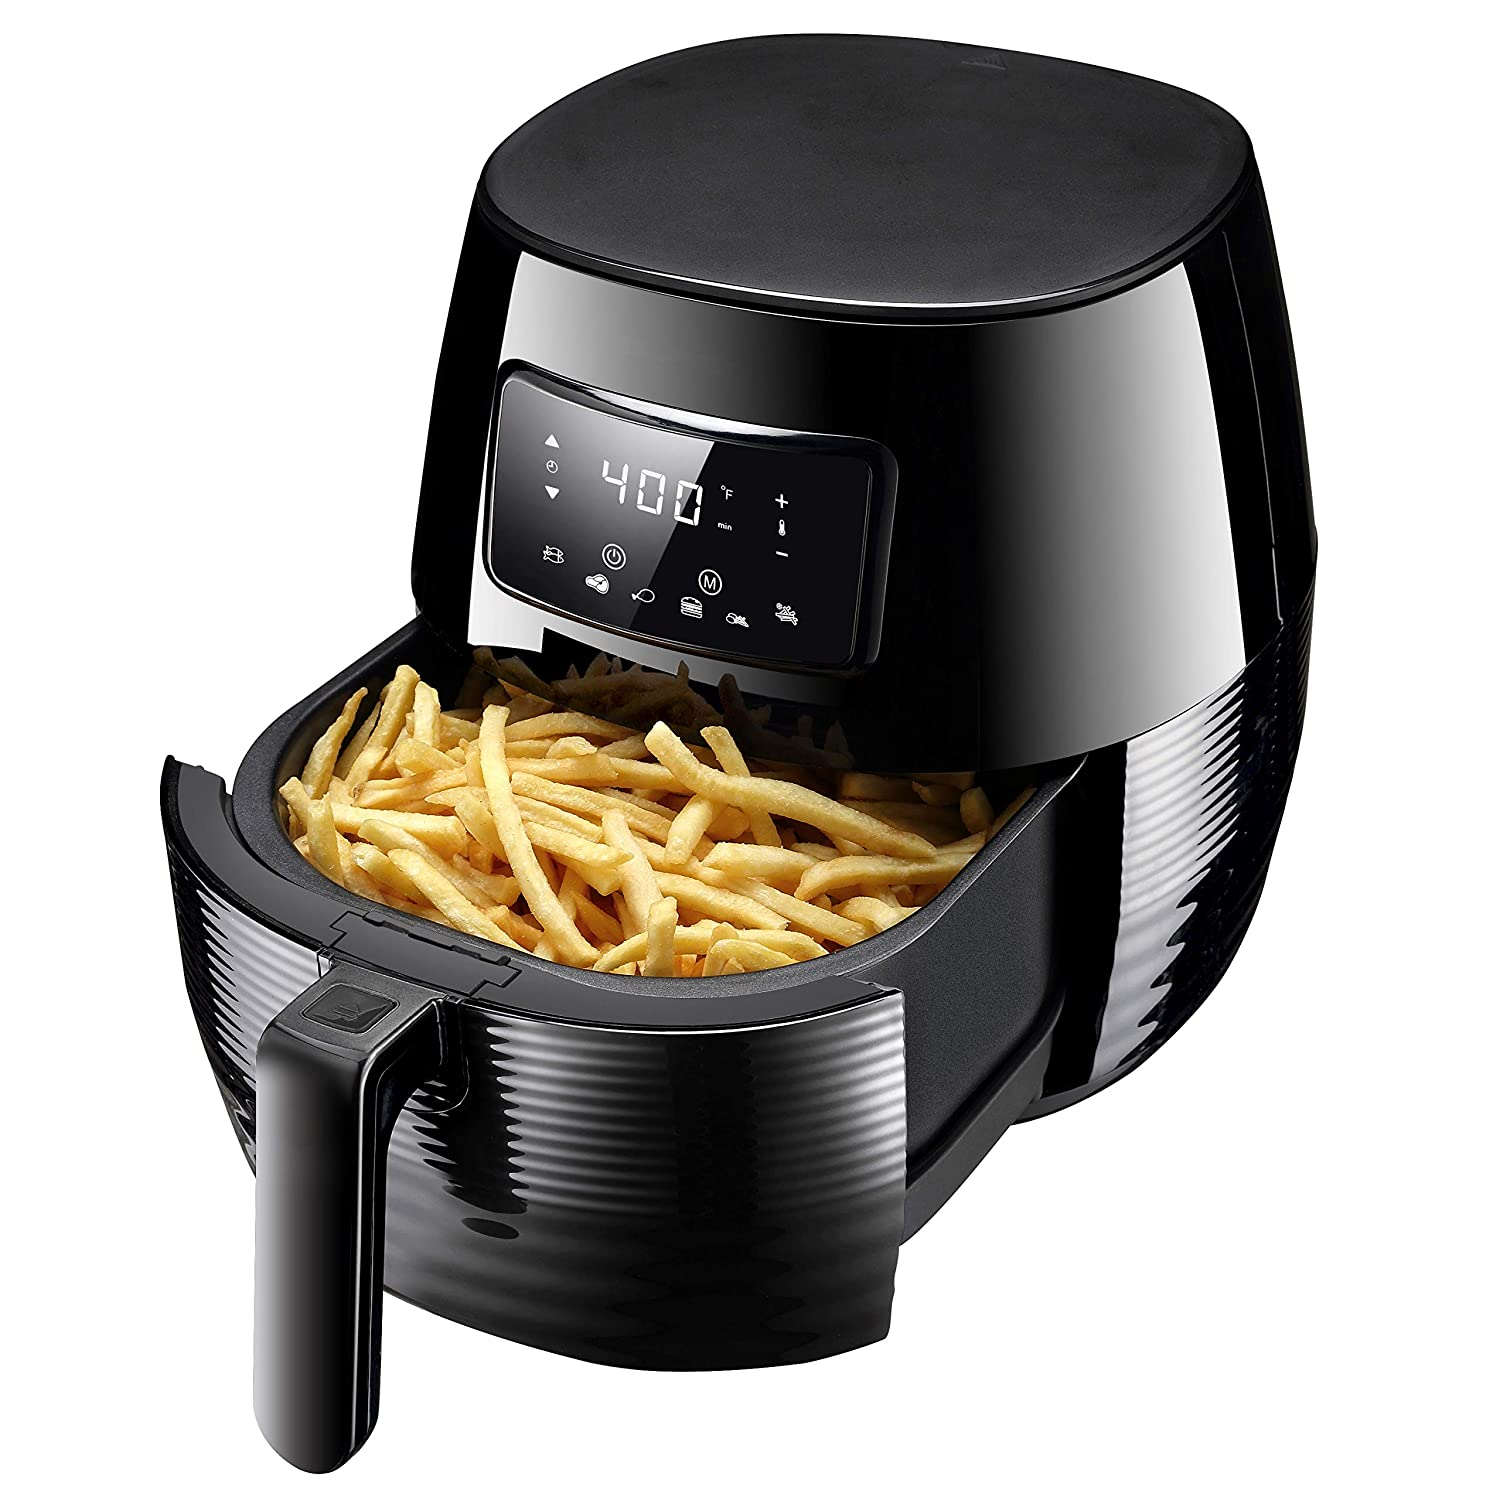 Phyismor Air Fryer 5.3 Qt, LCD Touch Screen Hot Electric Airfyer Oven Oilless Cooker with 6 Cooking Preset, 50 Cookbook Recipe, Detachable Nonstick Basket, 1400w